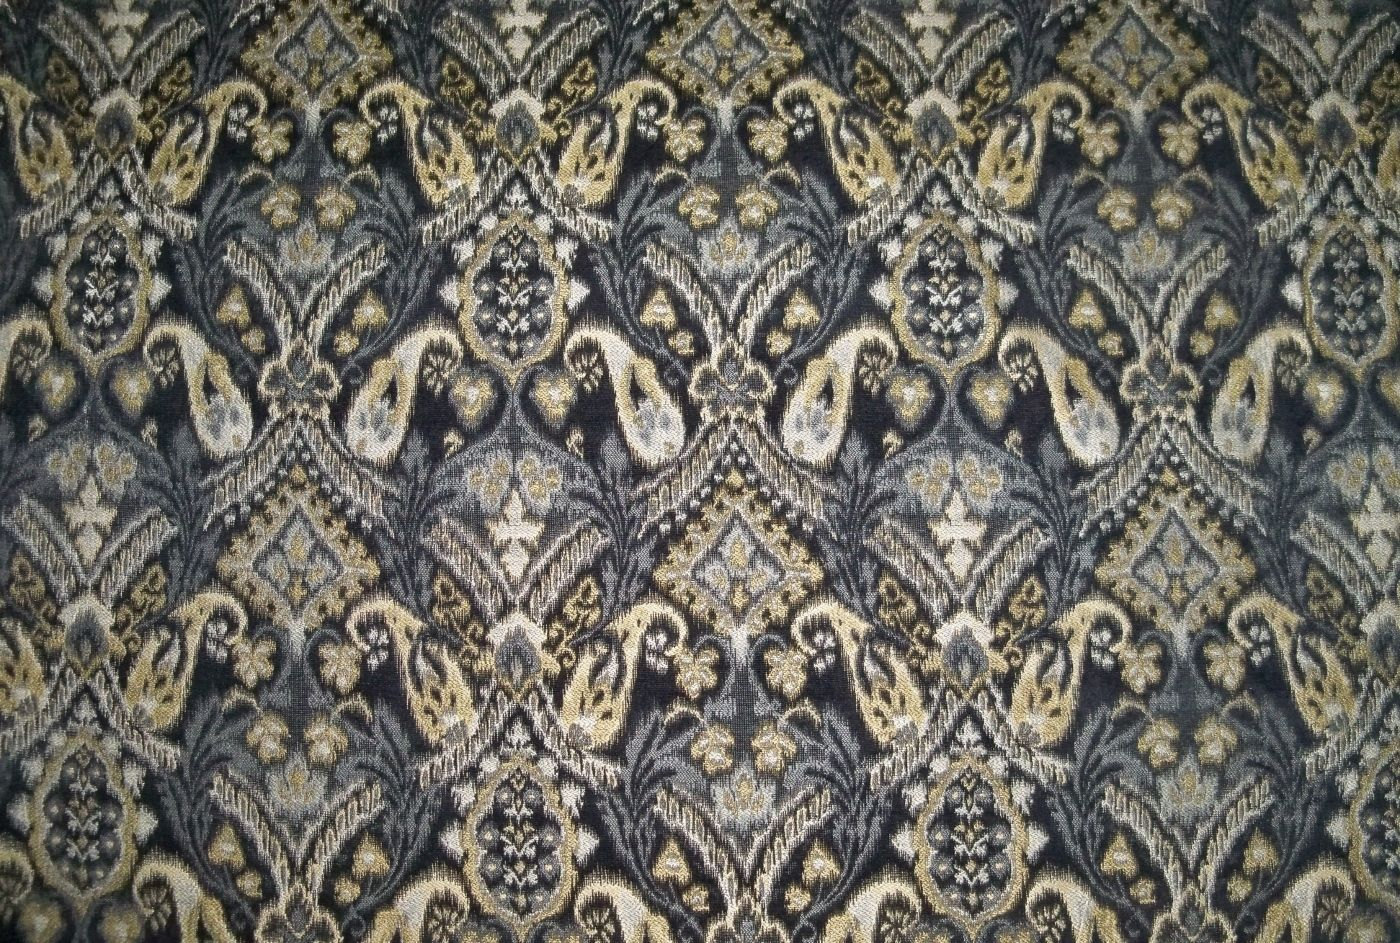 Purple And Black Damask Wallpaper Black And Silver Fabric 25 Wide Wallpaper